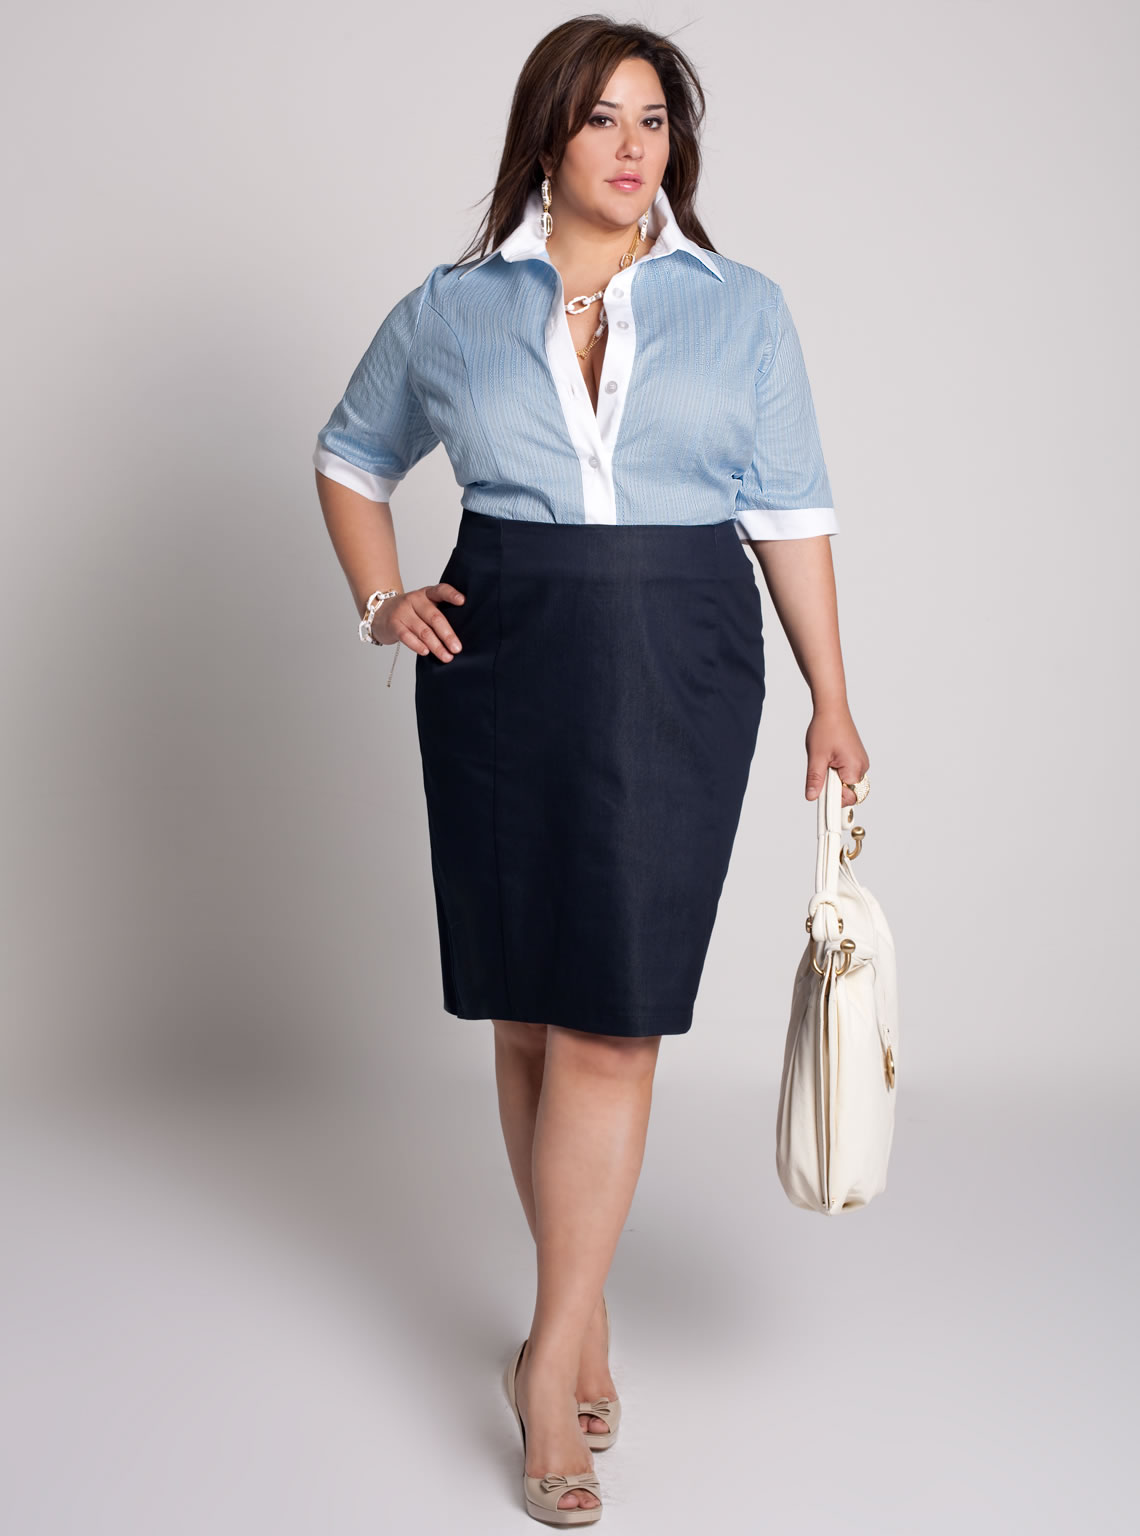 Shop through our selection of beautiful plus size apparel where you will find unlimited styles, colors, and designs to choose from. Stay comfortable and trendy with a shirt that snuggles your curves perfectly.